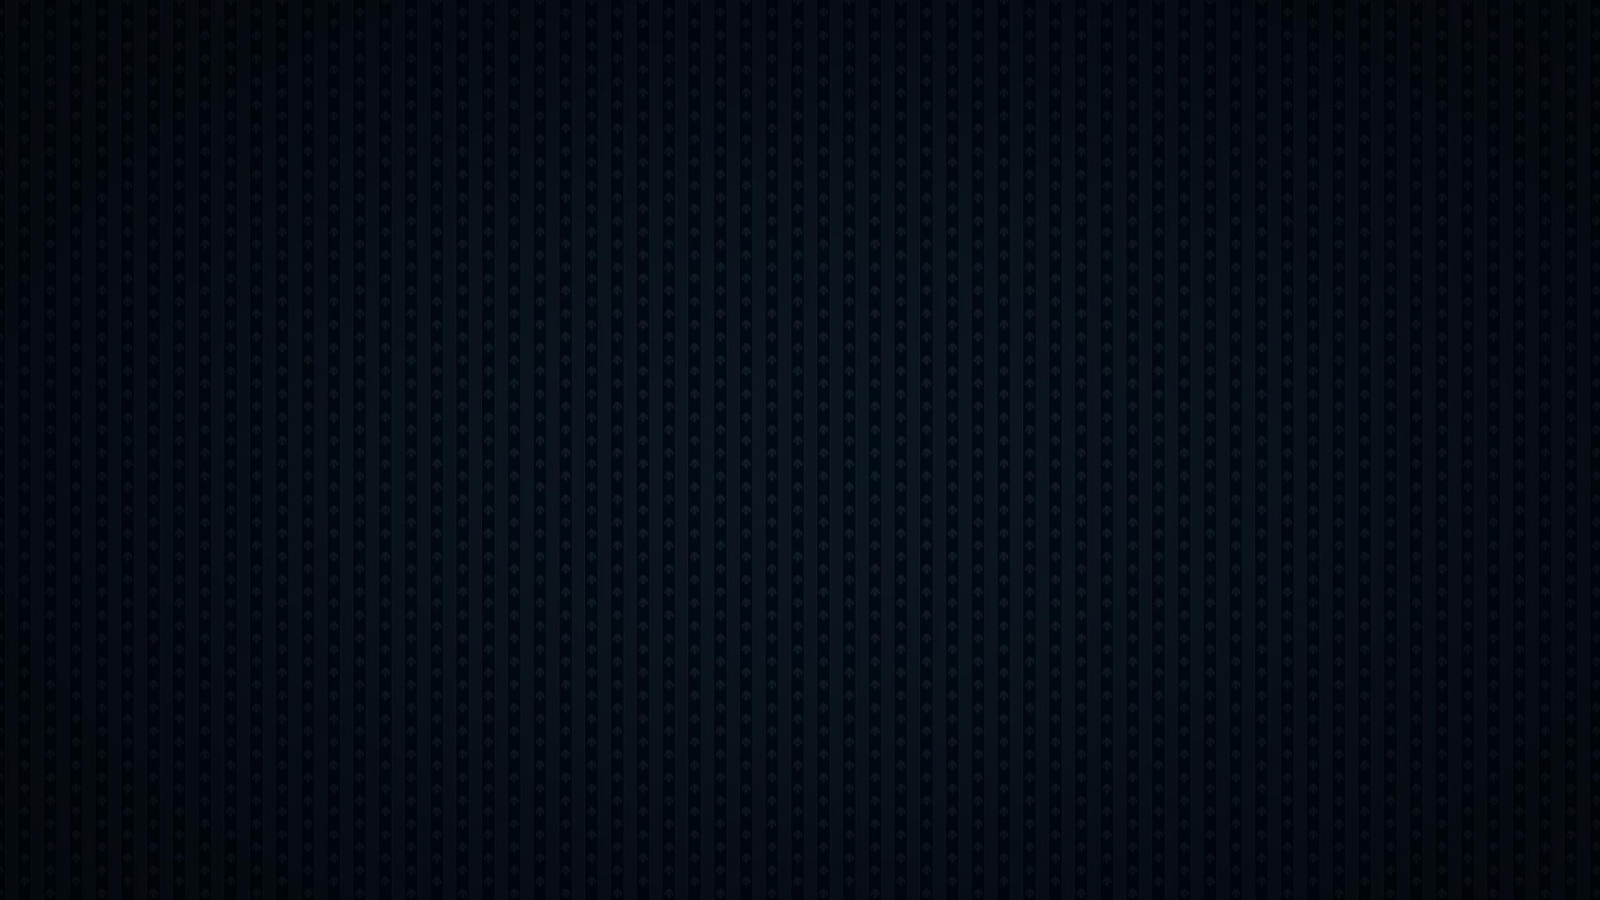 download dark blue texture wallpaper in textures wallpapers with all 1600x900